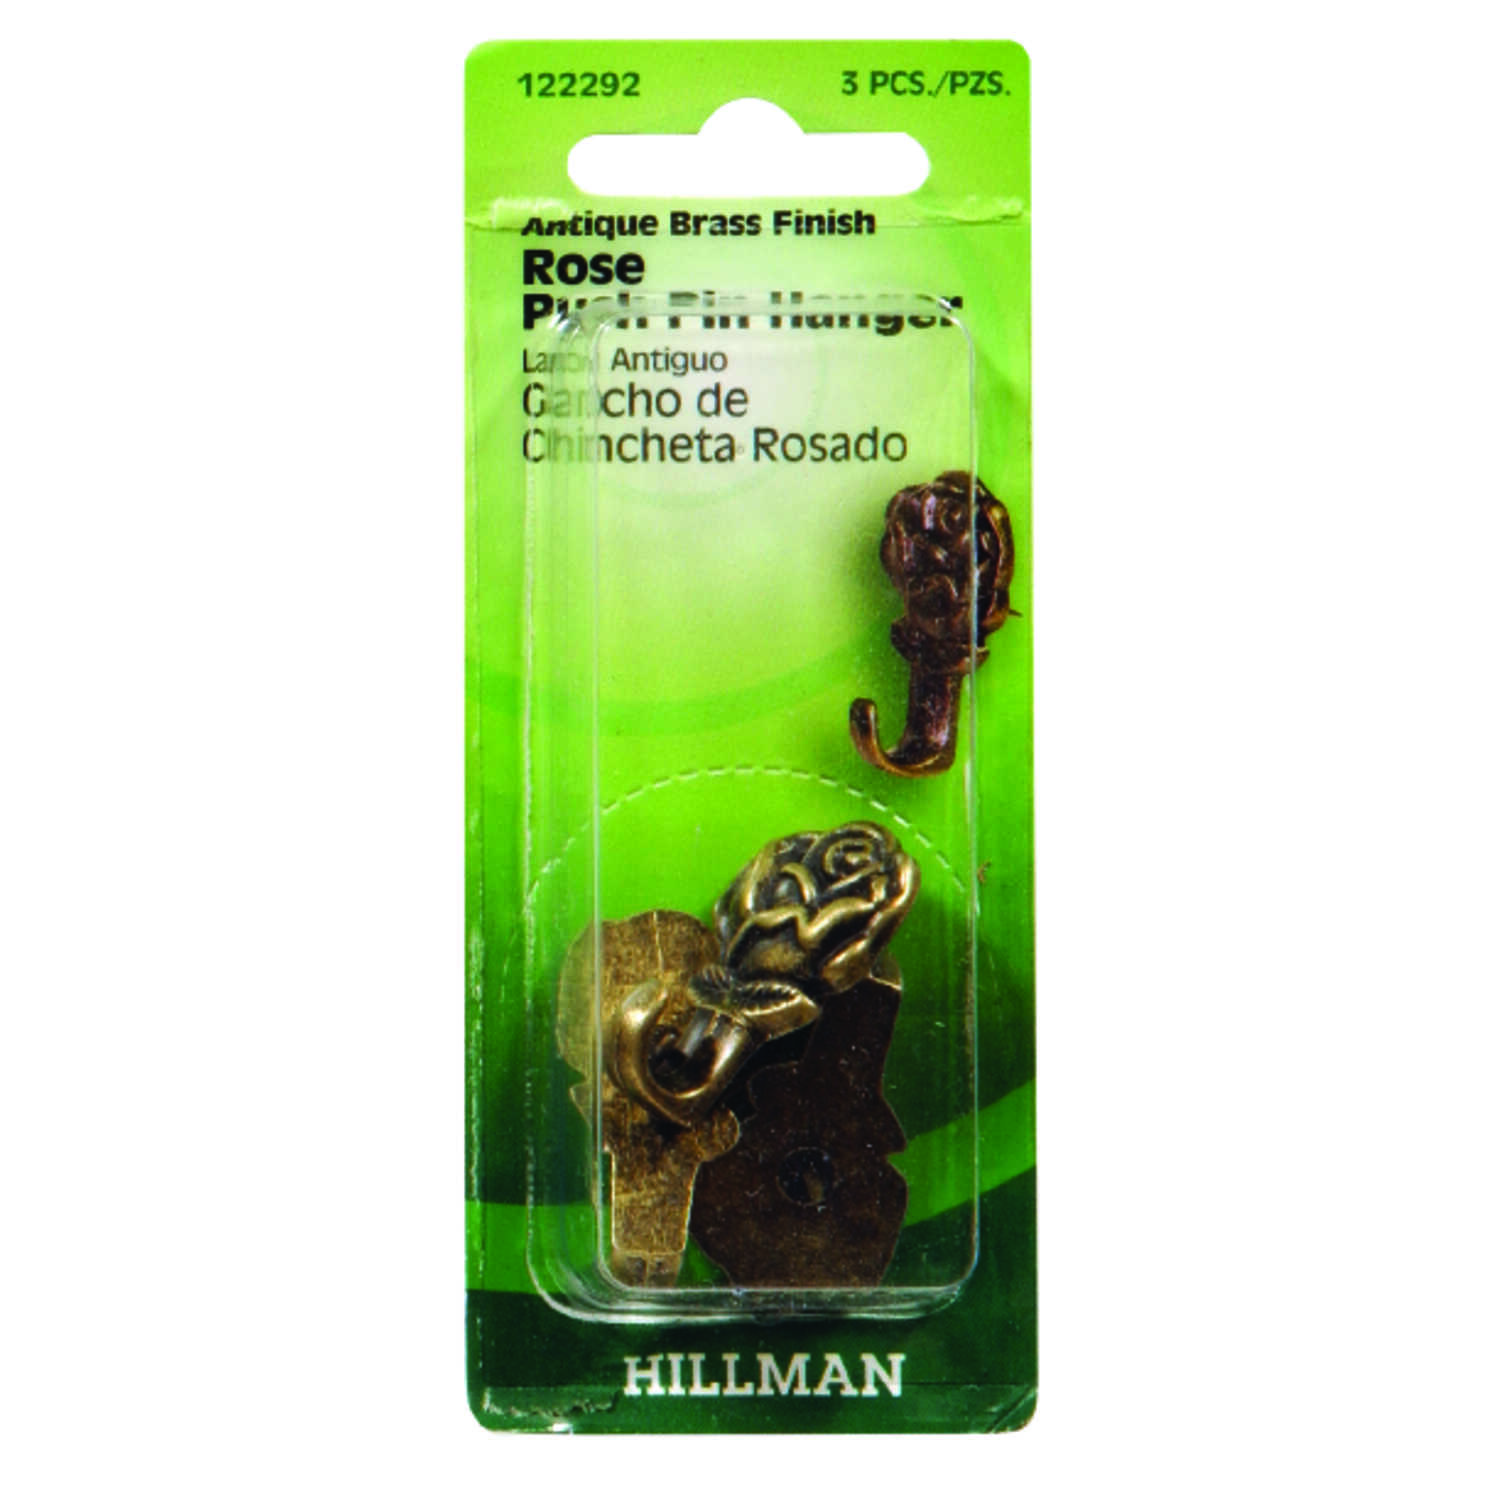 HILLMAN  AnchorWire  Gilt  Gold  Push Pin  Picture Hook  20 lb. Steel  3 pk